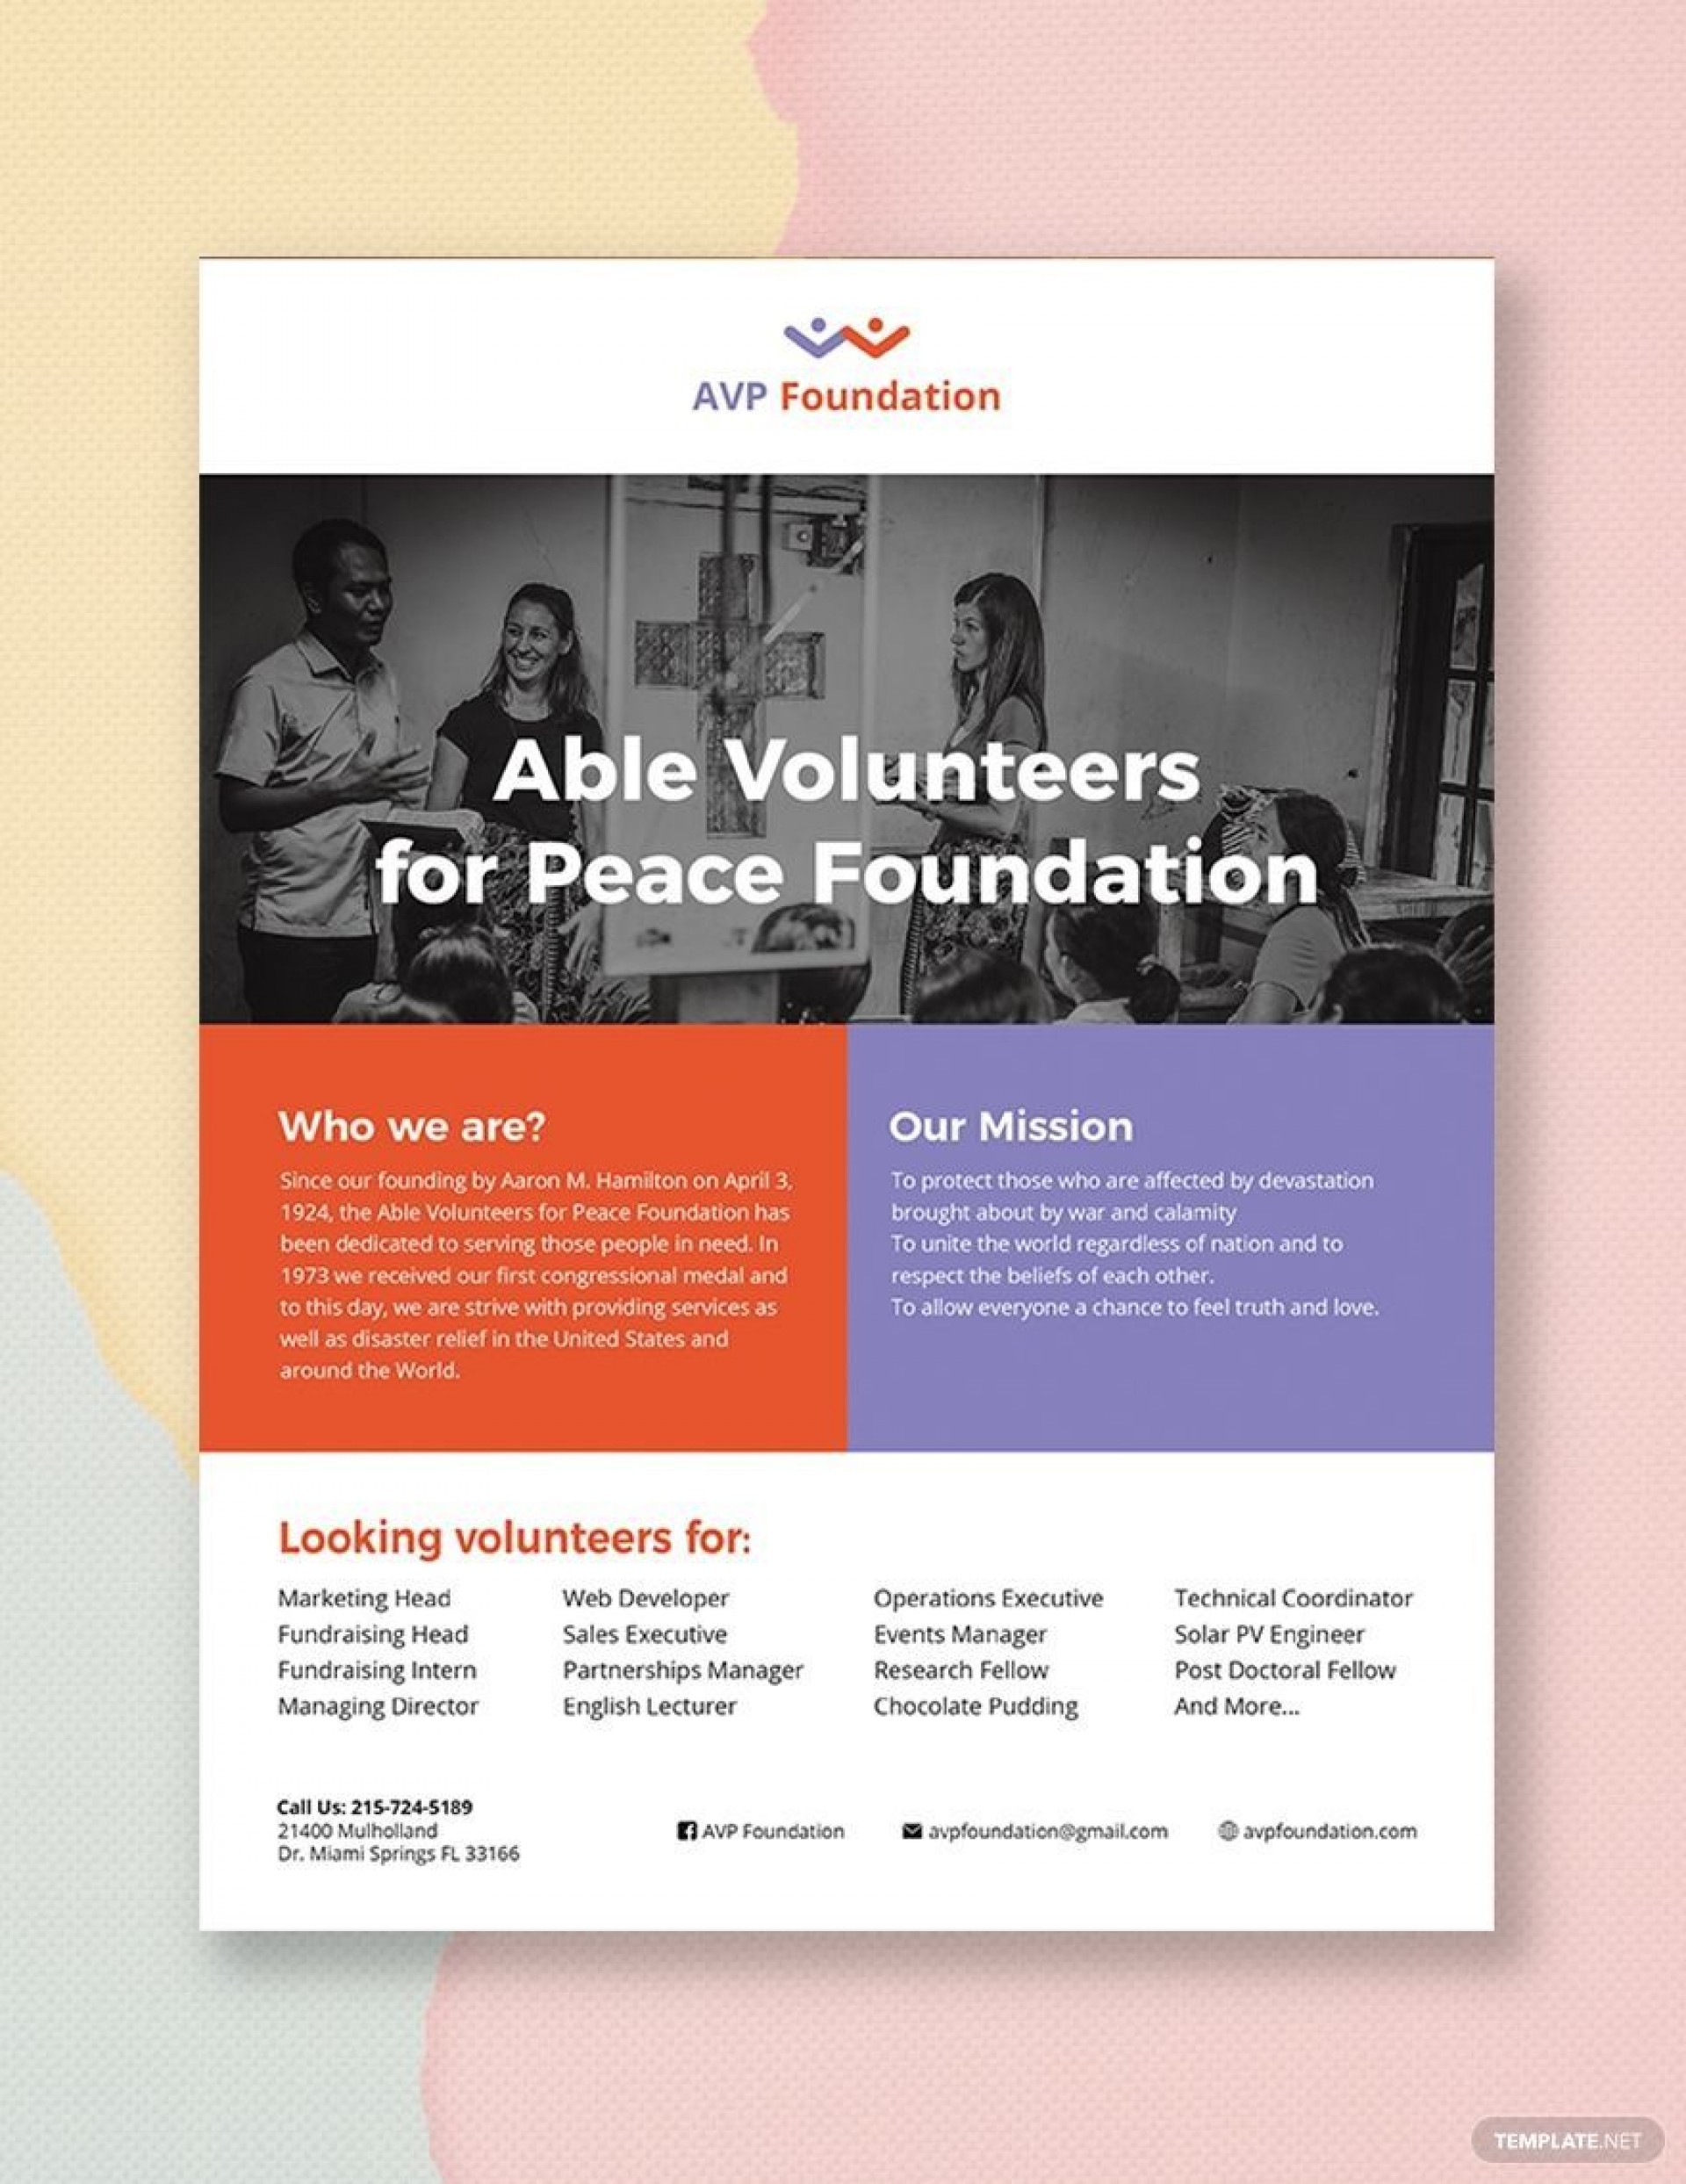 005 Excellent Microsoft Publisher Flyer Template High Def  Office Free Event Download1920